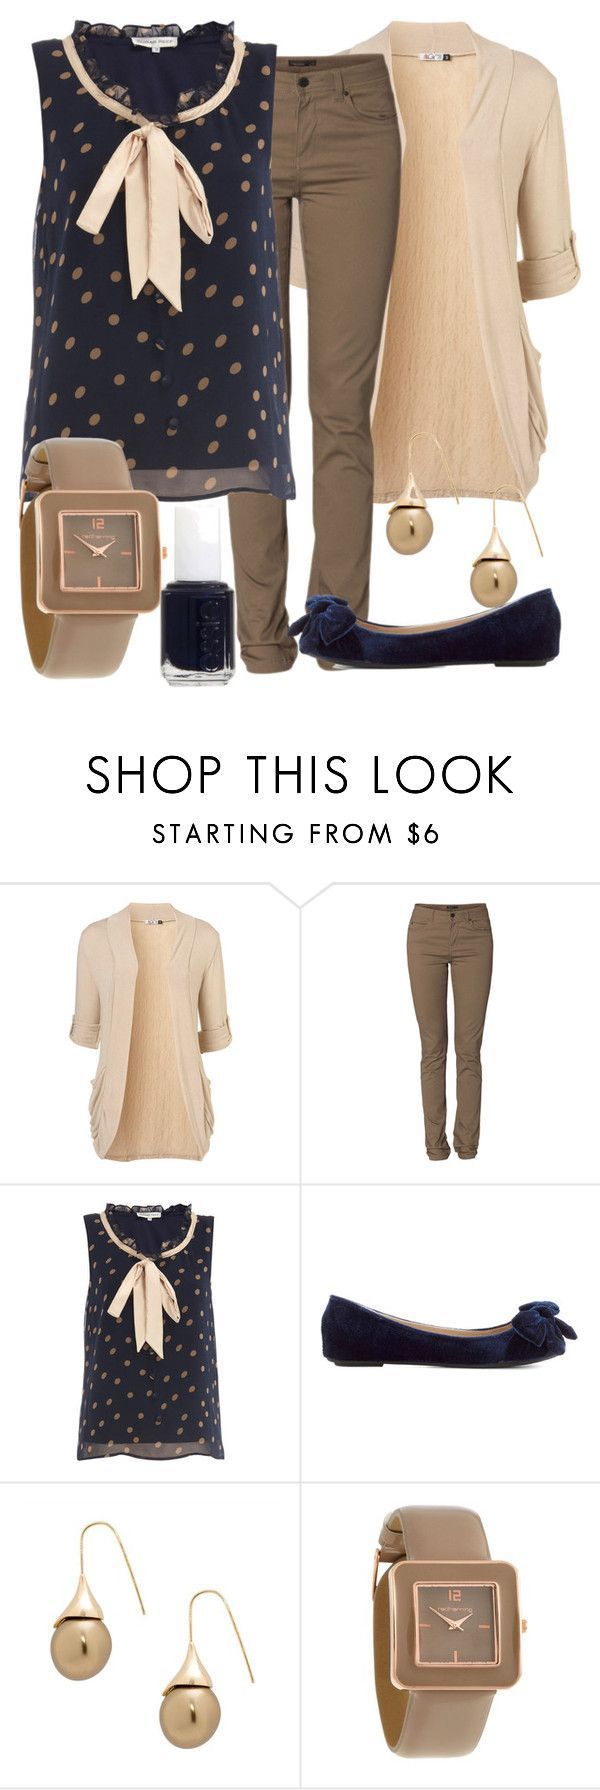 """""""Teacher Outfits on a Teacher's Budget 50"""" by allij28 ❤️ liked on Polyvore featuring WalG, Vero Moda, Sugar Reef, Betty Jackson, Red Herring, Essie, women's clothing, women, female and woman"""